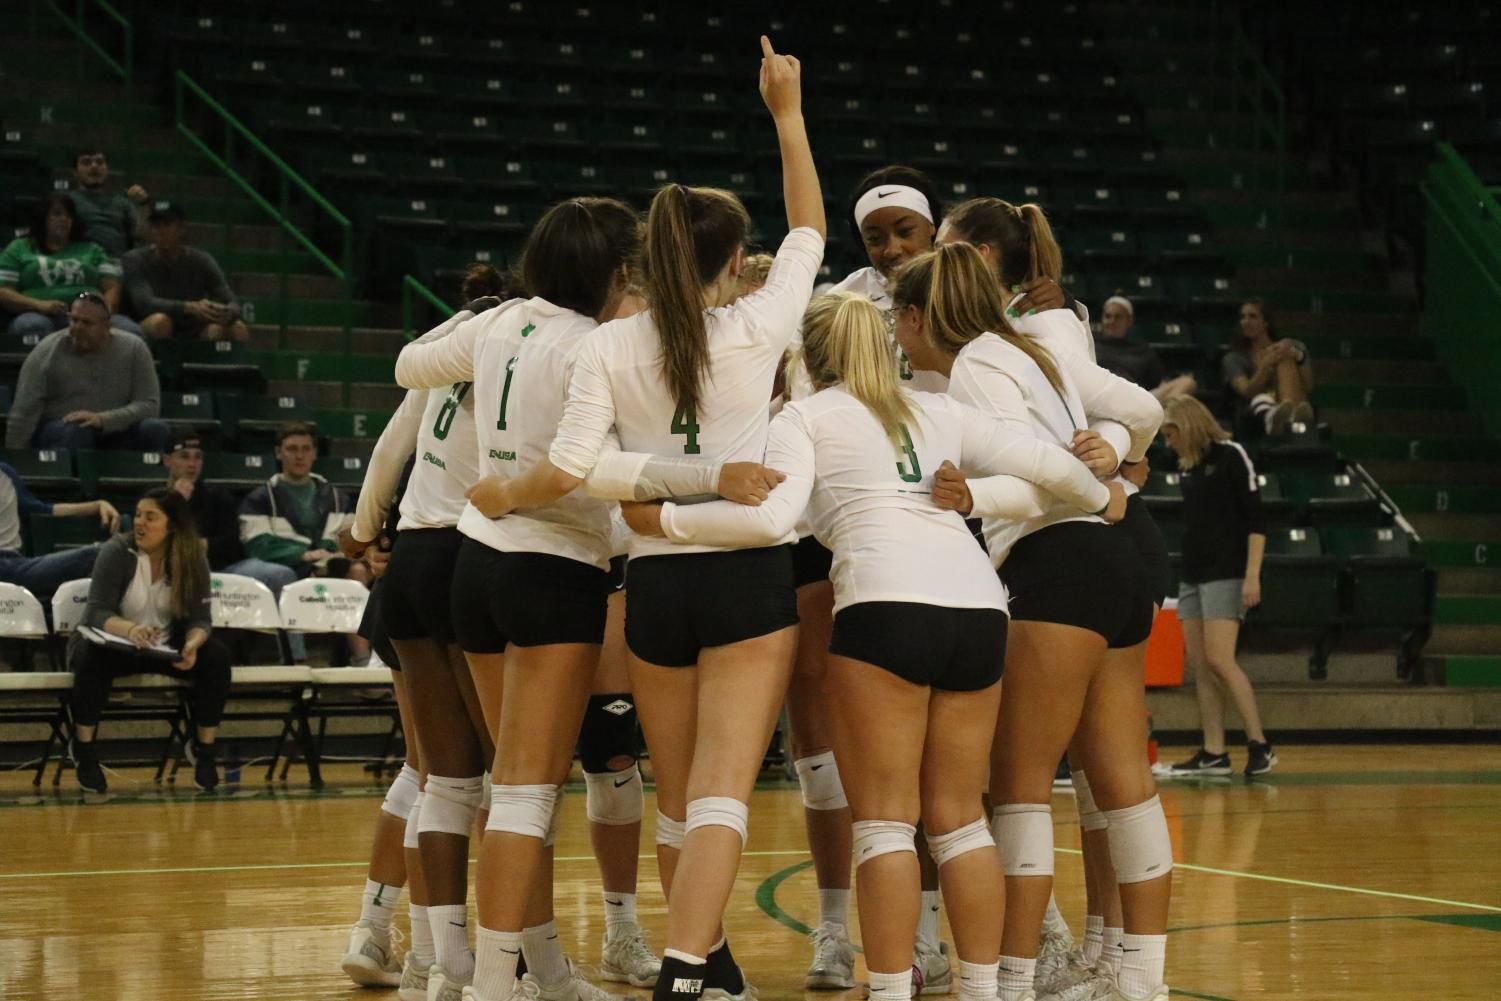 Marshall's volleyball team's head coach said she expects success in the fall after taking the spring semester and summer to prepare for the upcoming season.